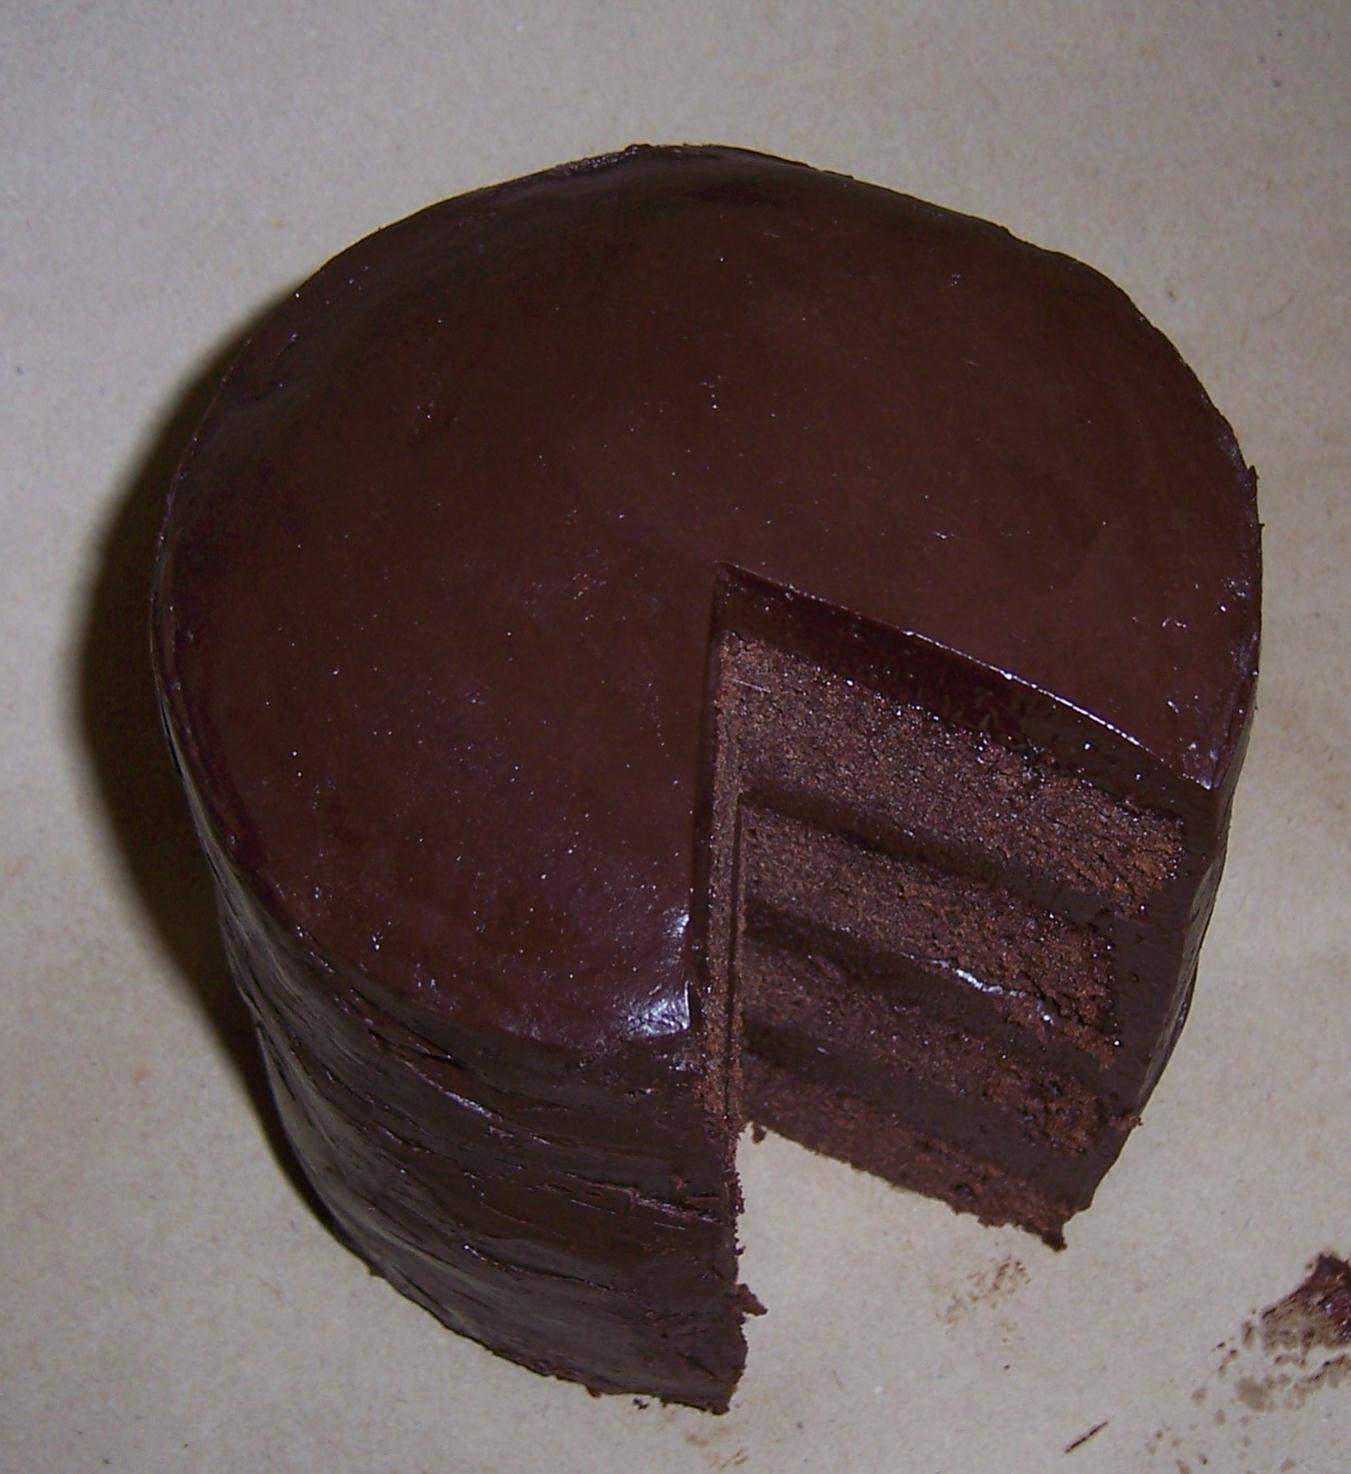 Chocolate Truffle Cake Images : tea darling?: Chocolate Truffle Cake - Death by chocolate ...